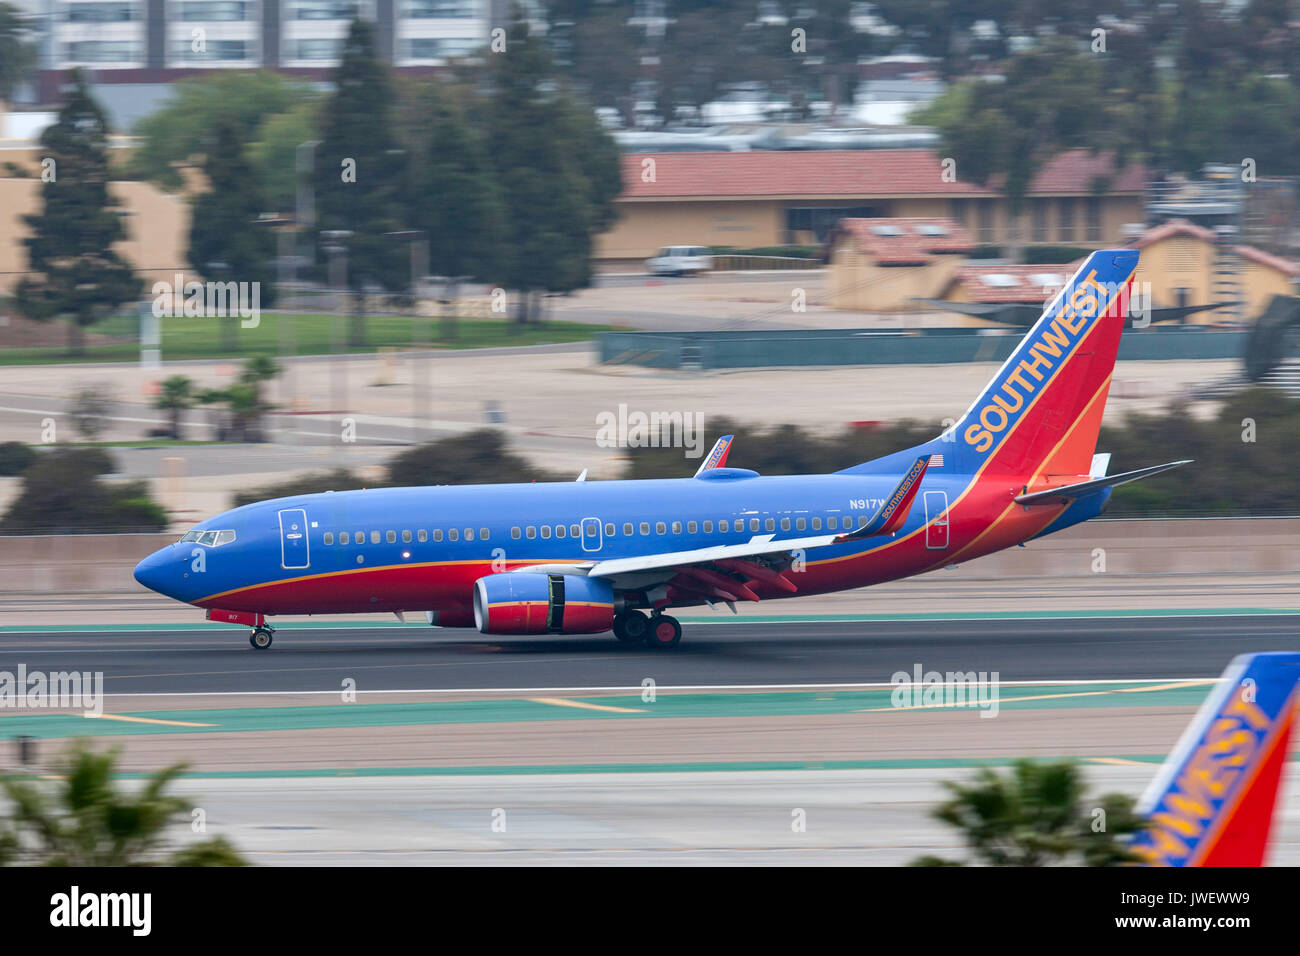 Southwest Airlines Boeing 737-7H4 N917WN arriving at San Diego International Airport. - Stock Image